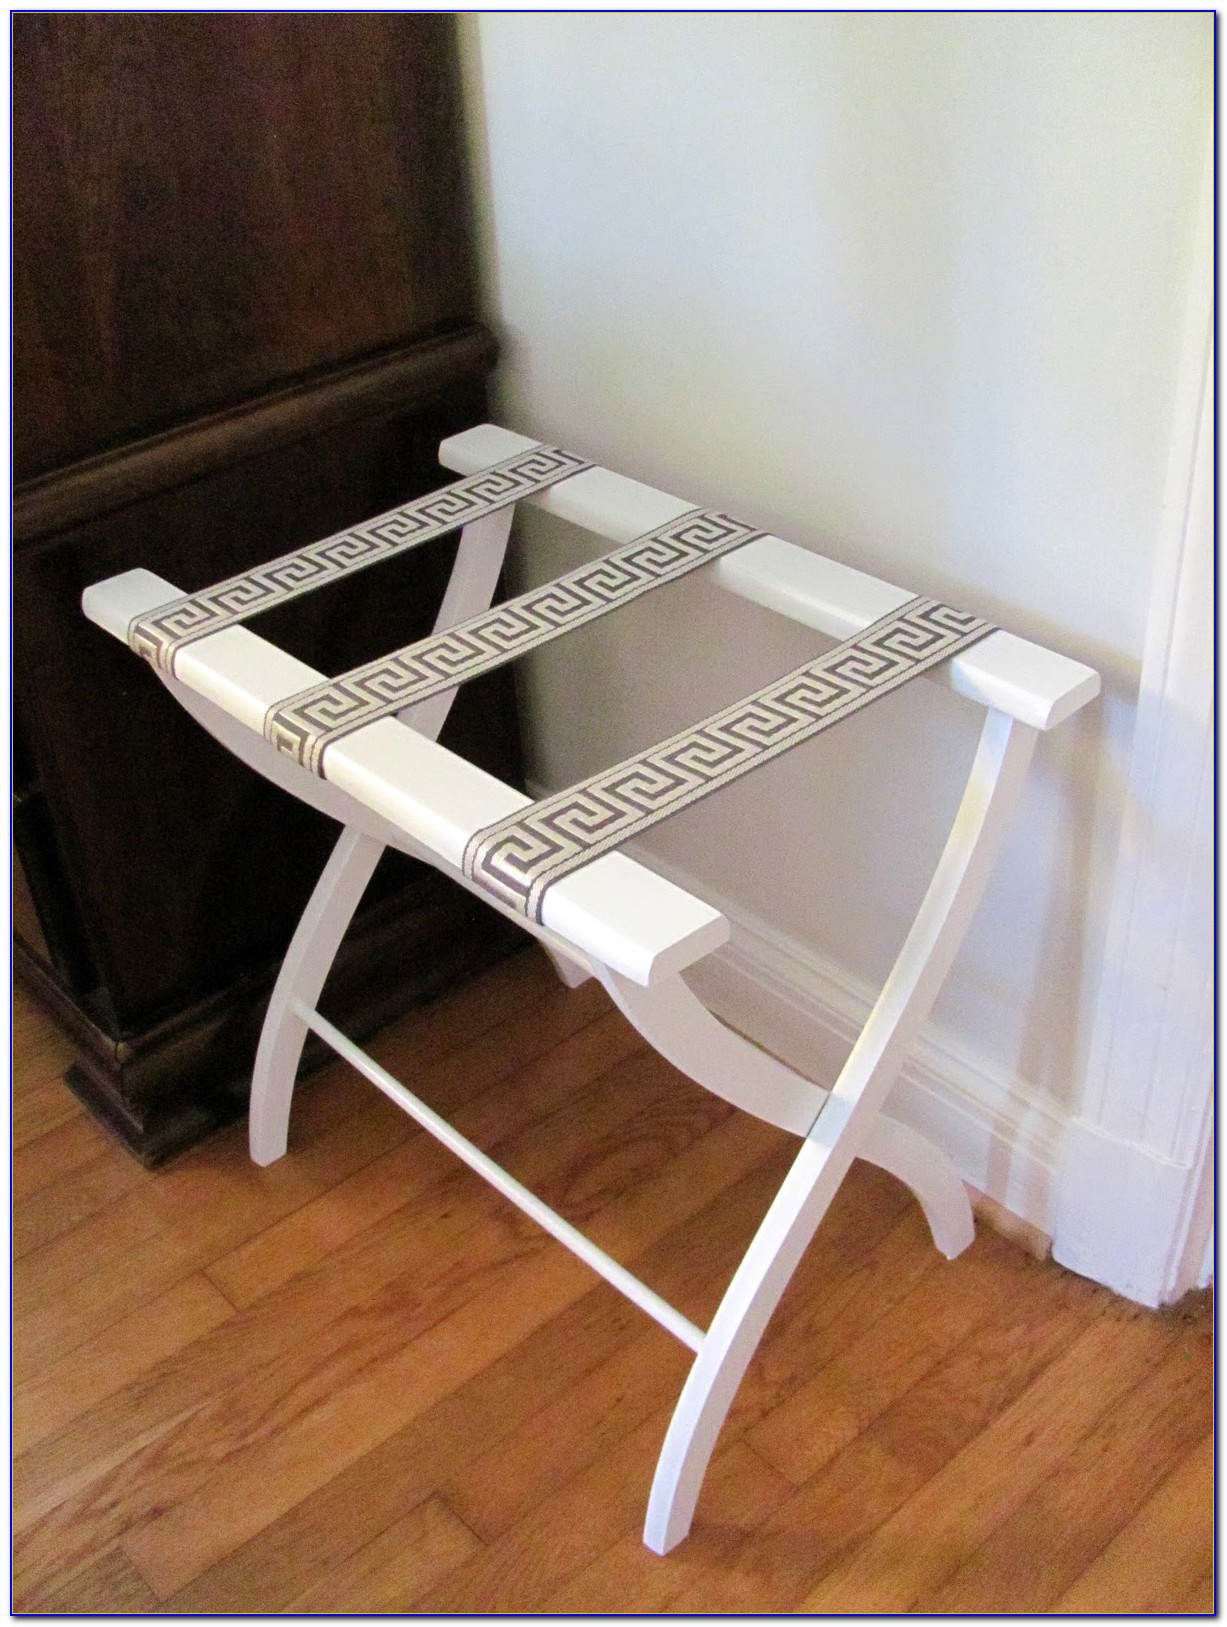 Luggage Racks For Bedroom Nz